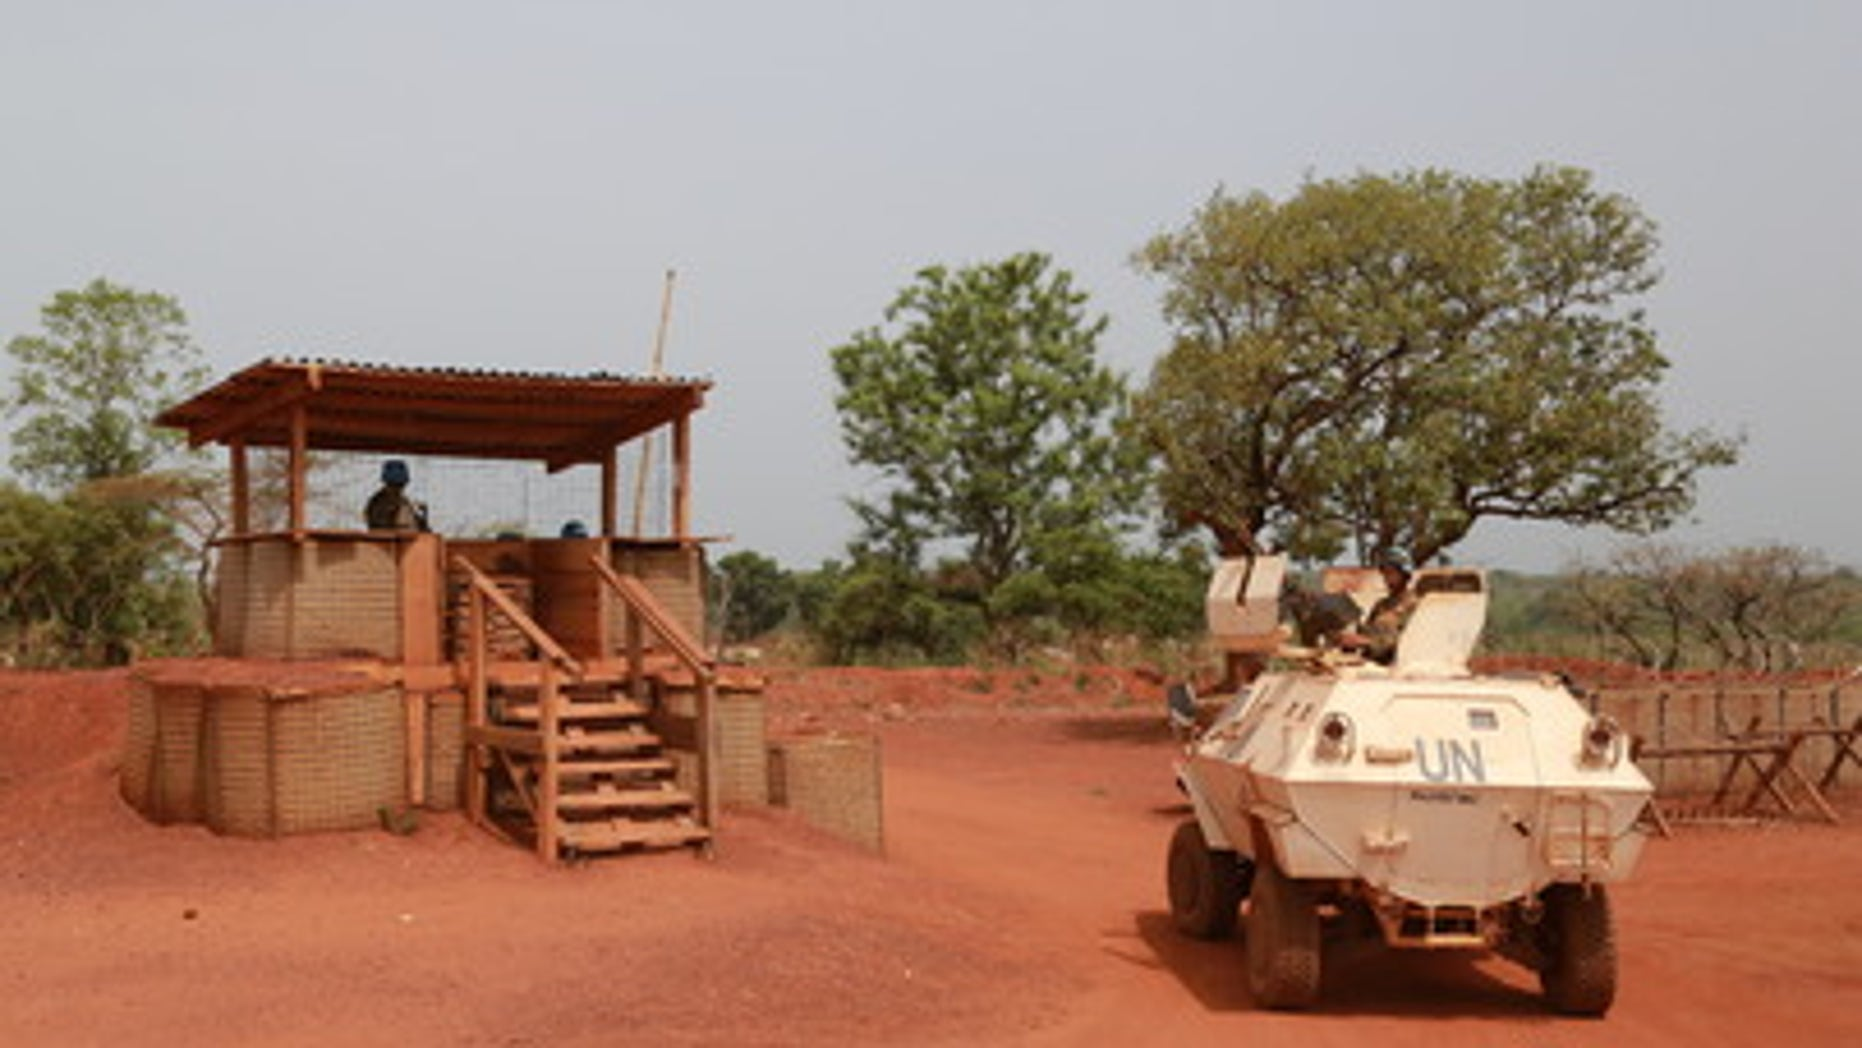 Peacekeepers serving with the UN Multidimensional Integrated Stabilization Mission in the Central African Republic (MINUSCA) in Bambari, on the day of a visit by Samantha Power, United States Permanent representative to the UN, to the town. (UN Photo/Nektarios Markogiannis)